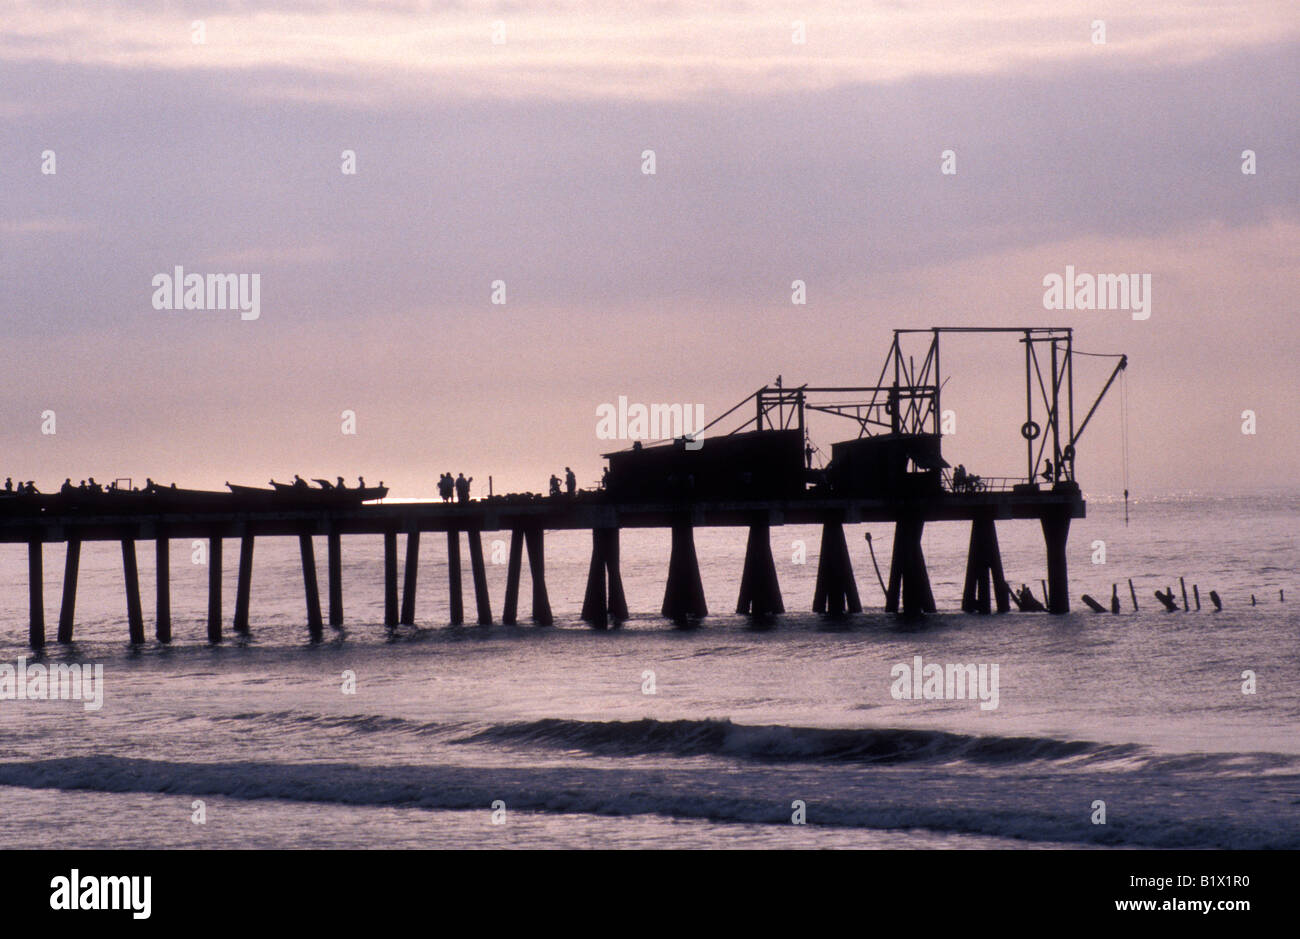 people-on-the-town-pier-at-sunset-in-la-